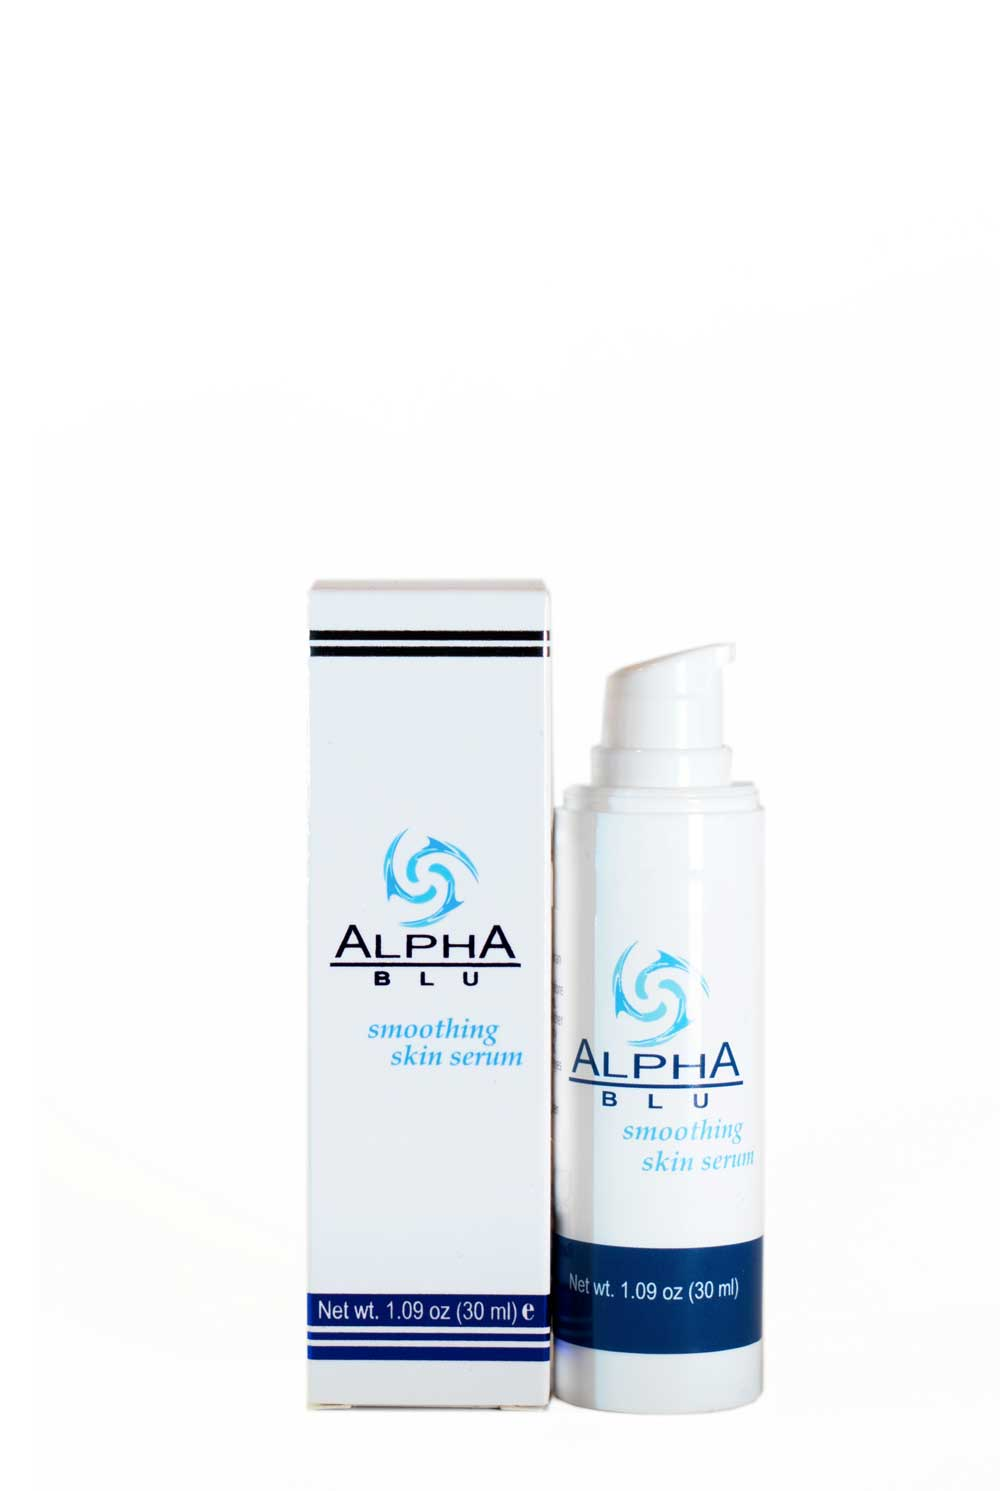 Alpha Blu Smoothing Skin Serum